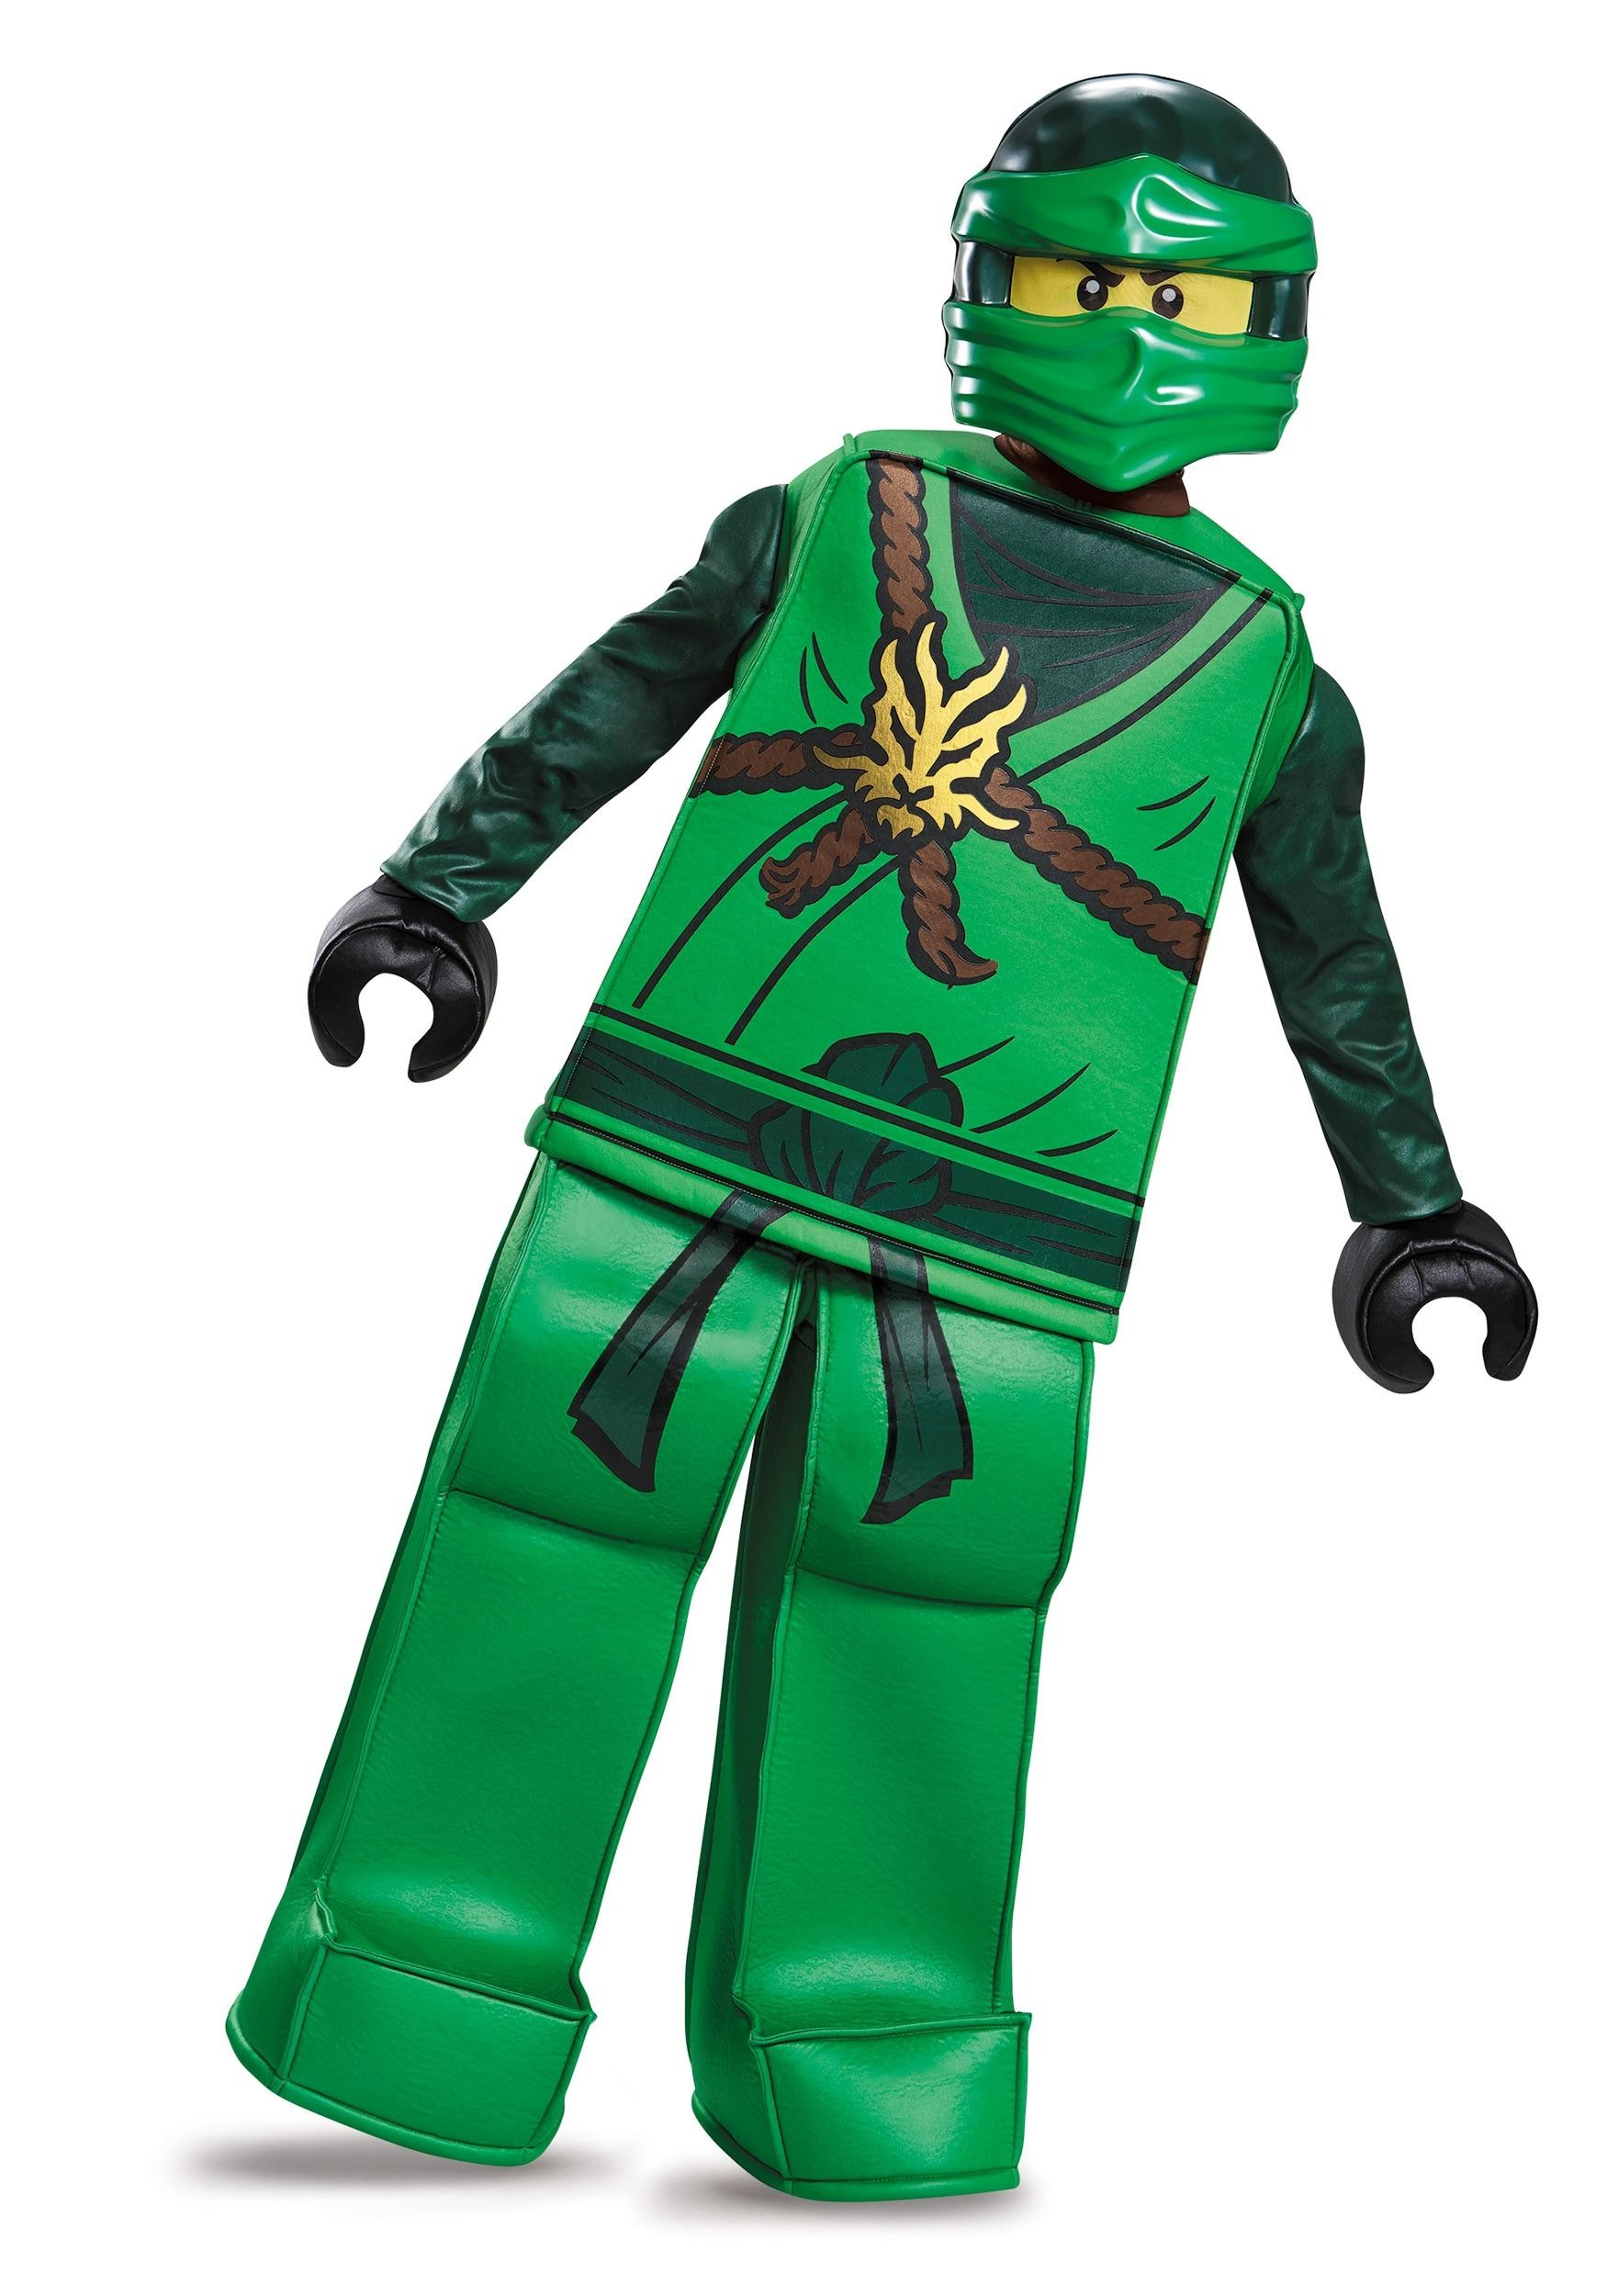 Have your childs lego ninjago halloween costume ready